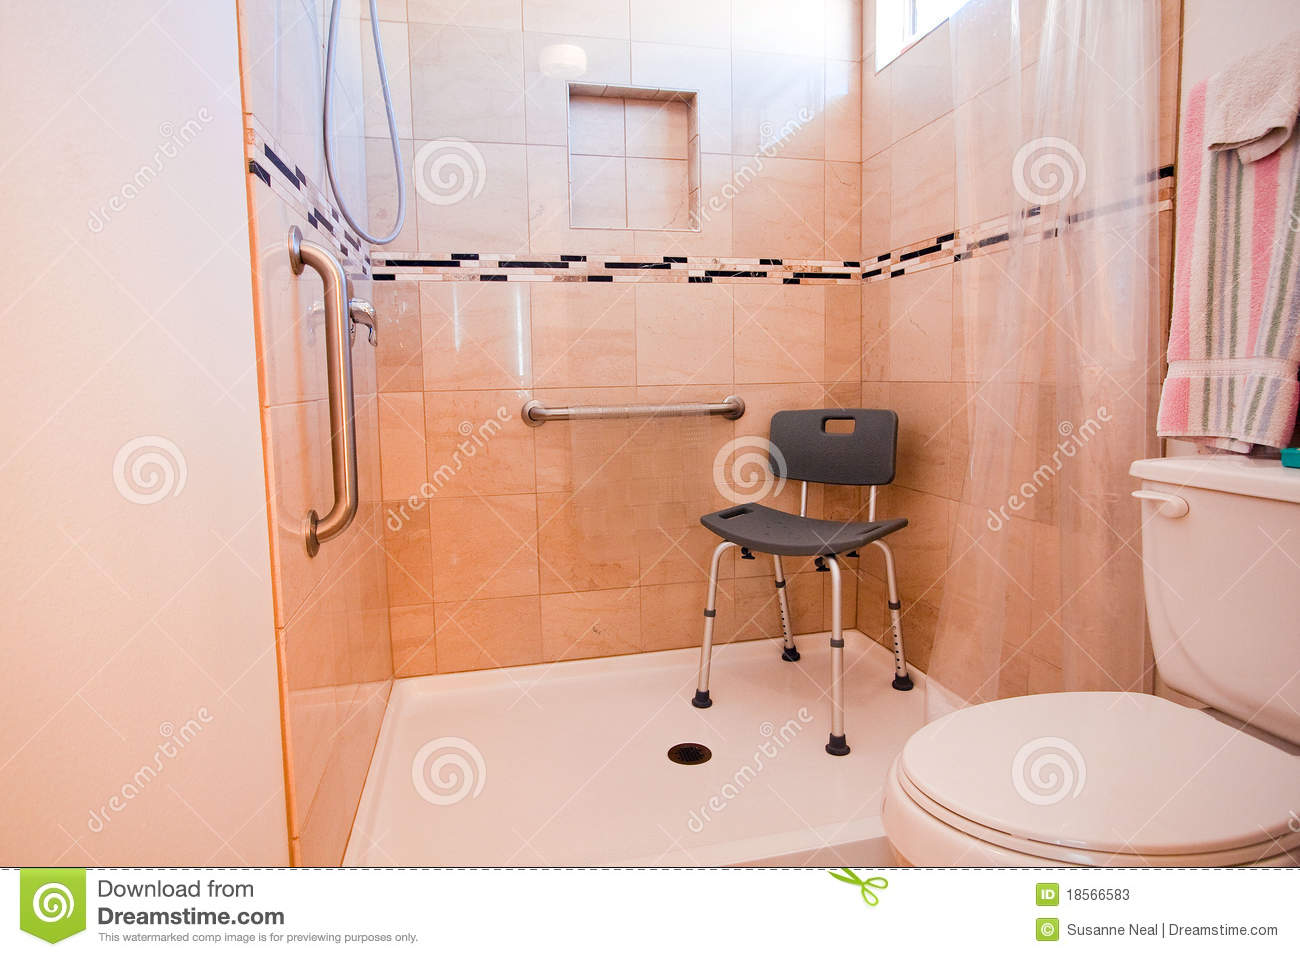 Handicapped Shower Stall Stock Photos Image 18566583